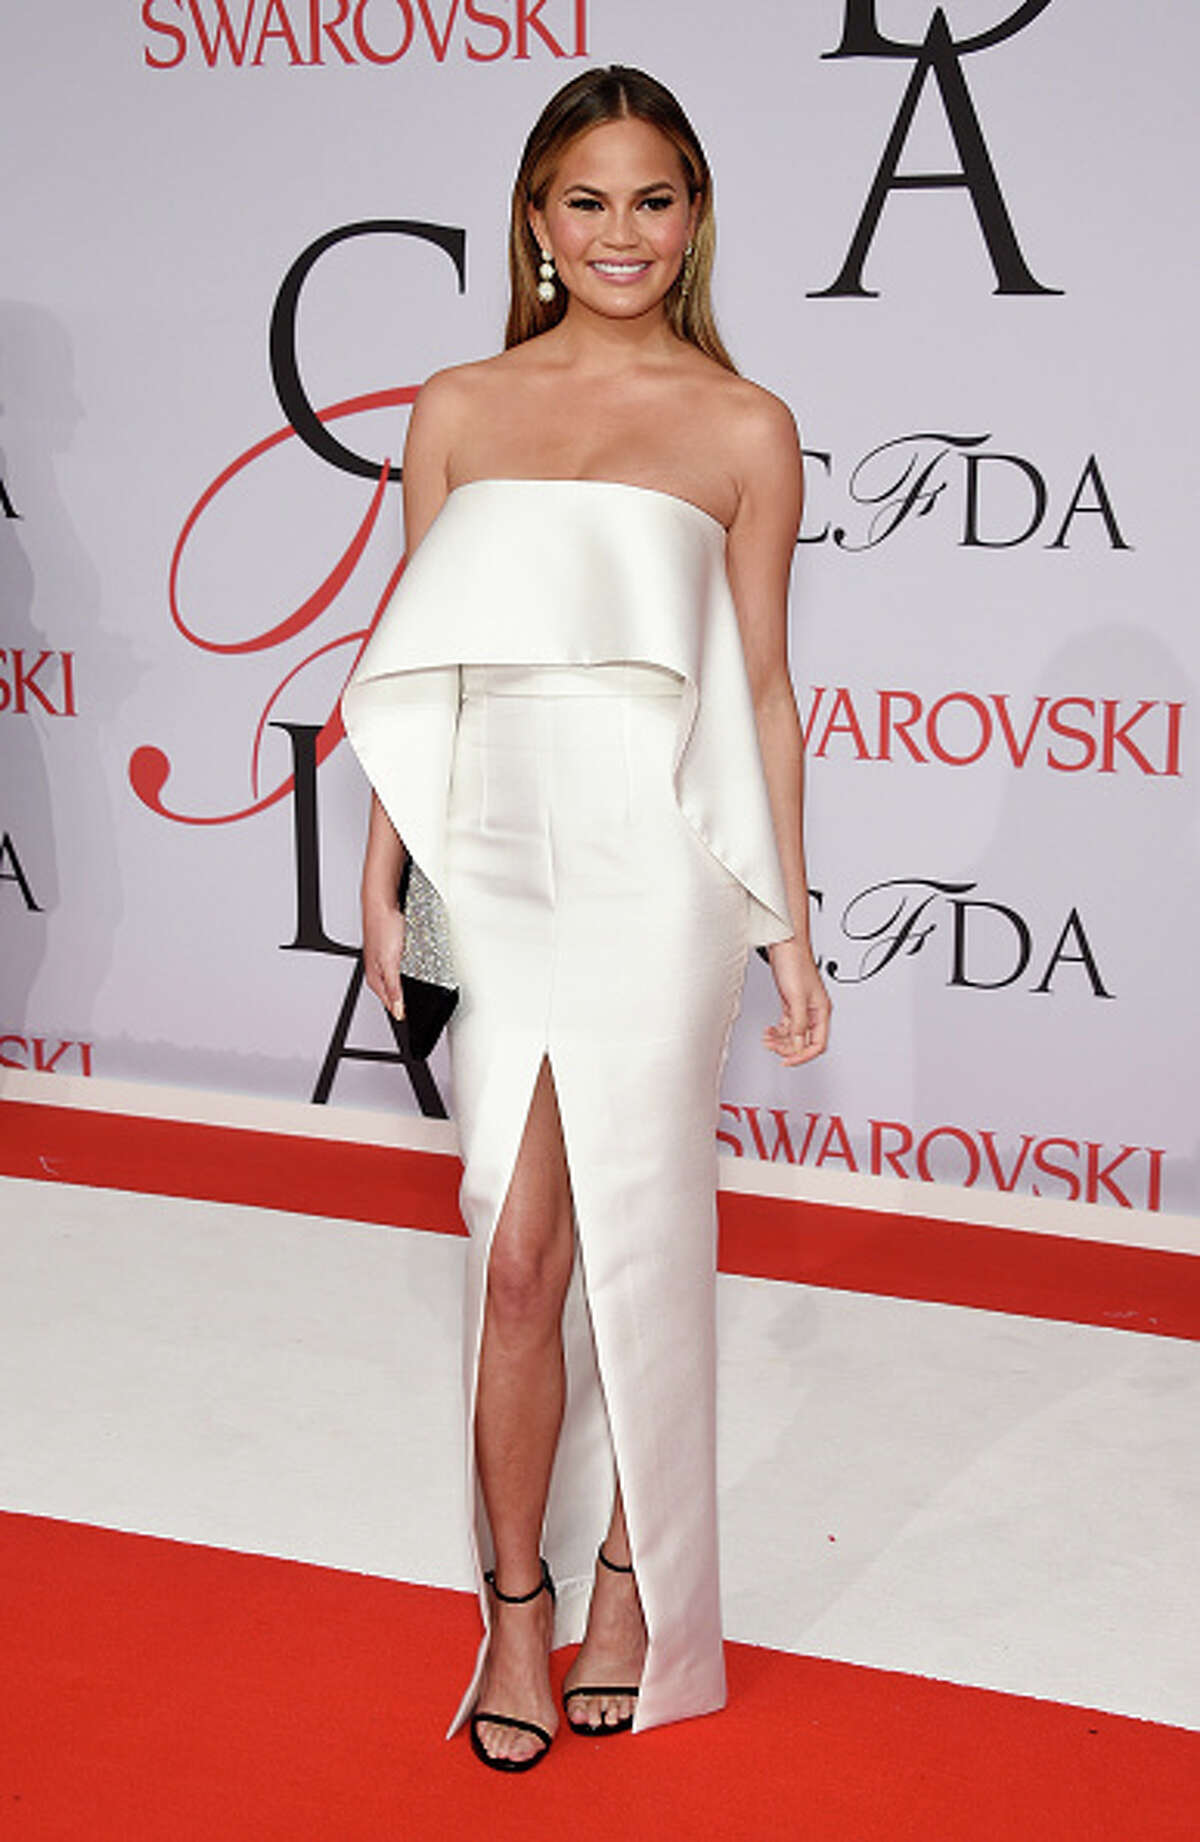 Model Chrissy Teigen attends the 2015 CFDA Fashion Awards at Alice Tully Hall at Lincoln Center on June 1, 2015 in New York City. (Photo by Dimitrios Kambouris/Getty Images)